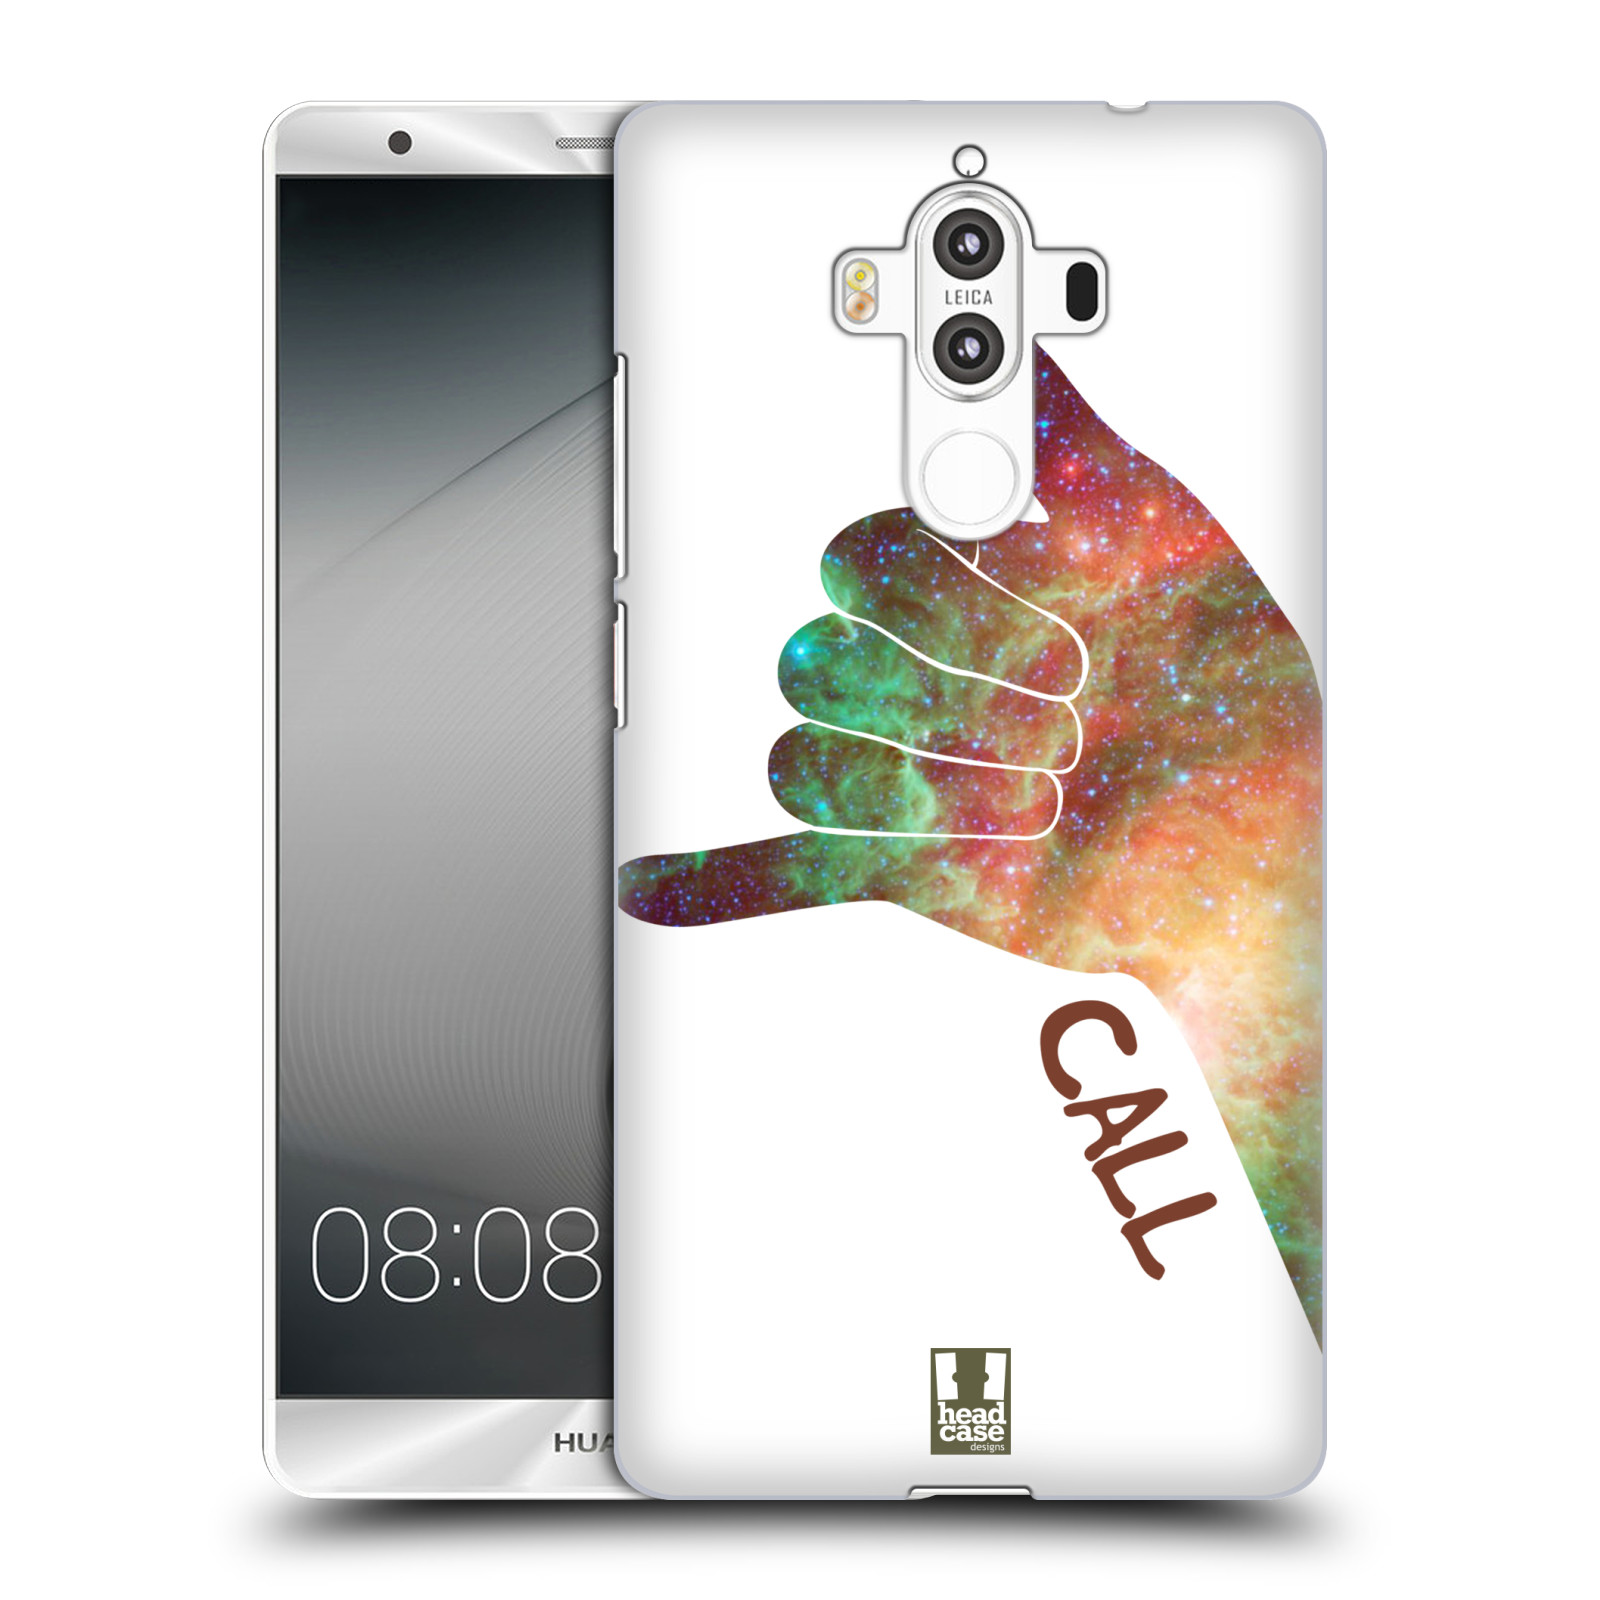 HEAD-CASE-DESIGNS-HAND-GESTURE-NEBULA-HARD-BACK-CASE-FOR-HUAWEI-MATE-9